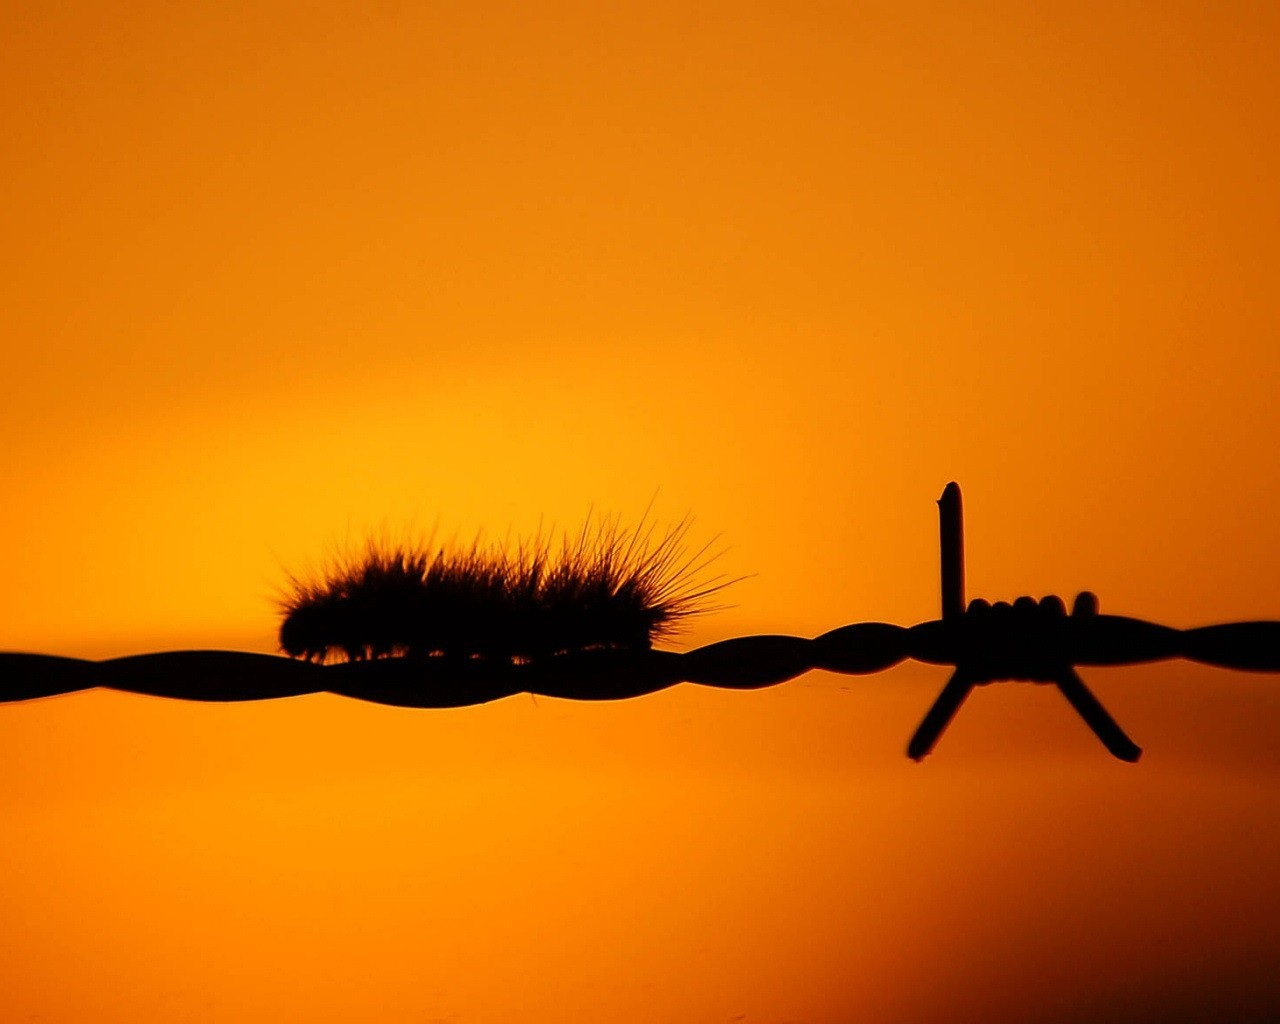 Caterpillar on a Wire